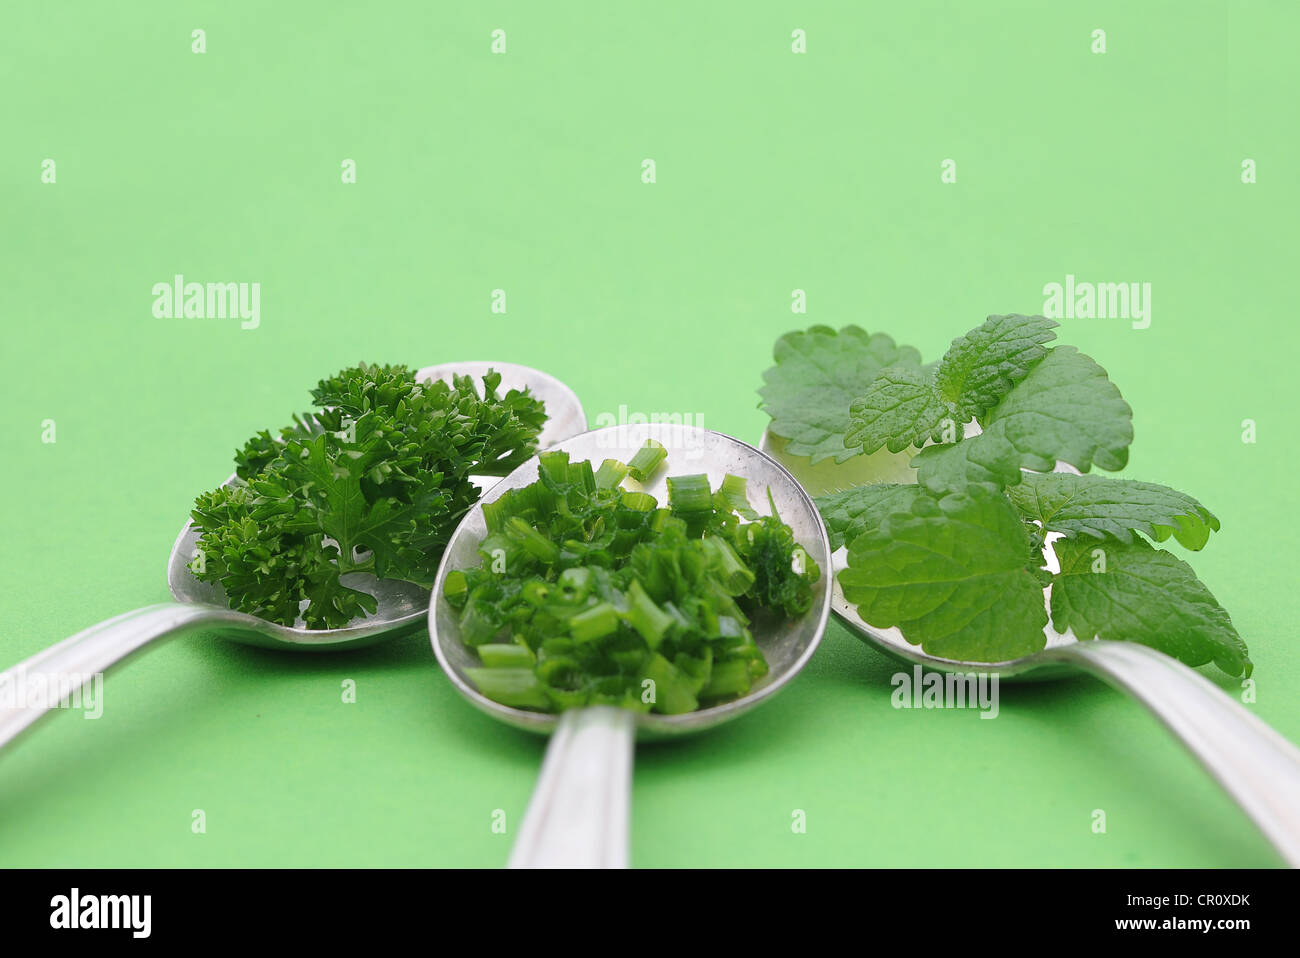 Fresh herbs, parsley, chives, mint, on old spoons - Stock Image